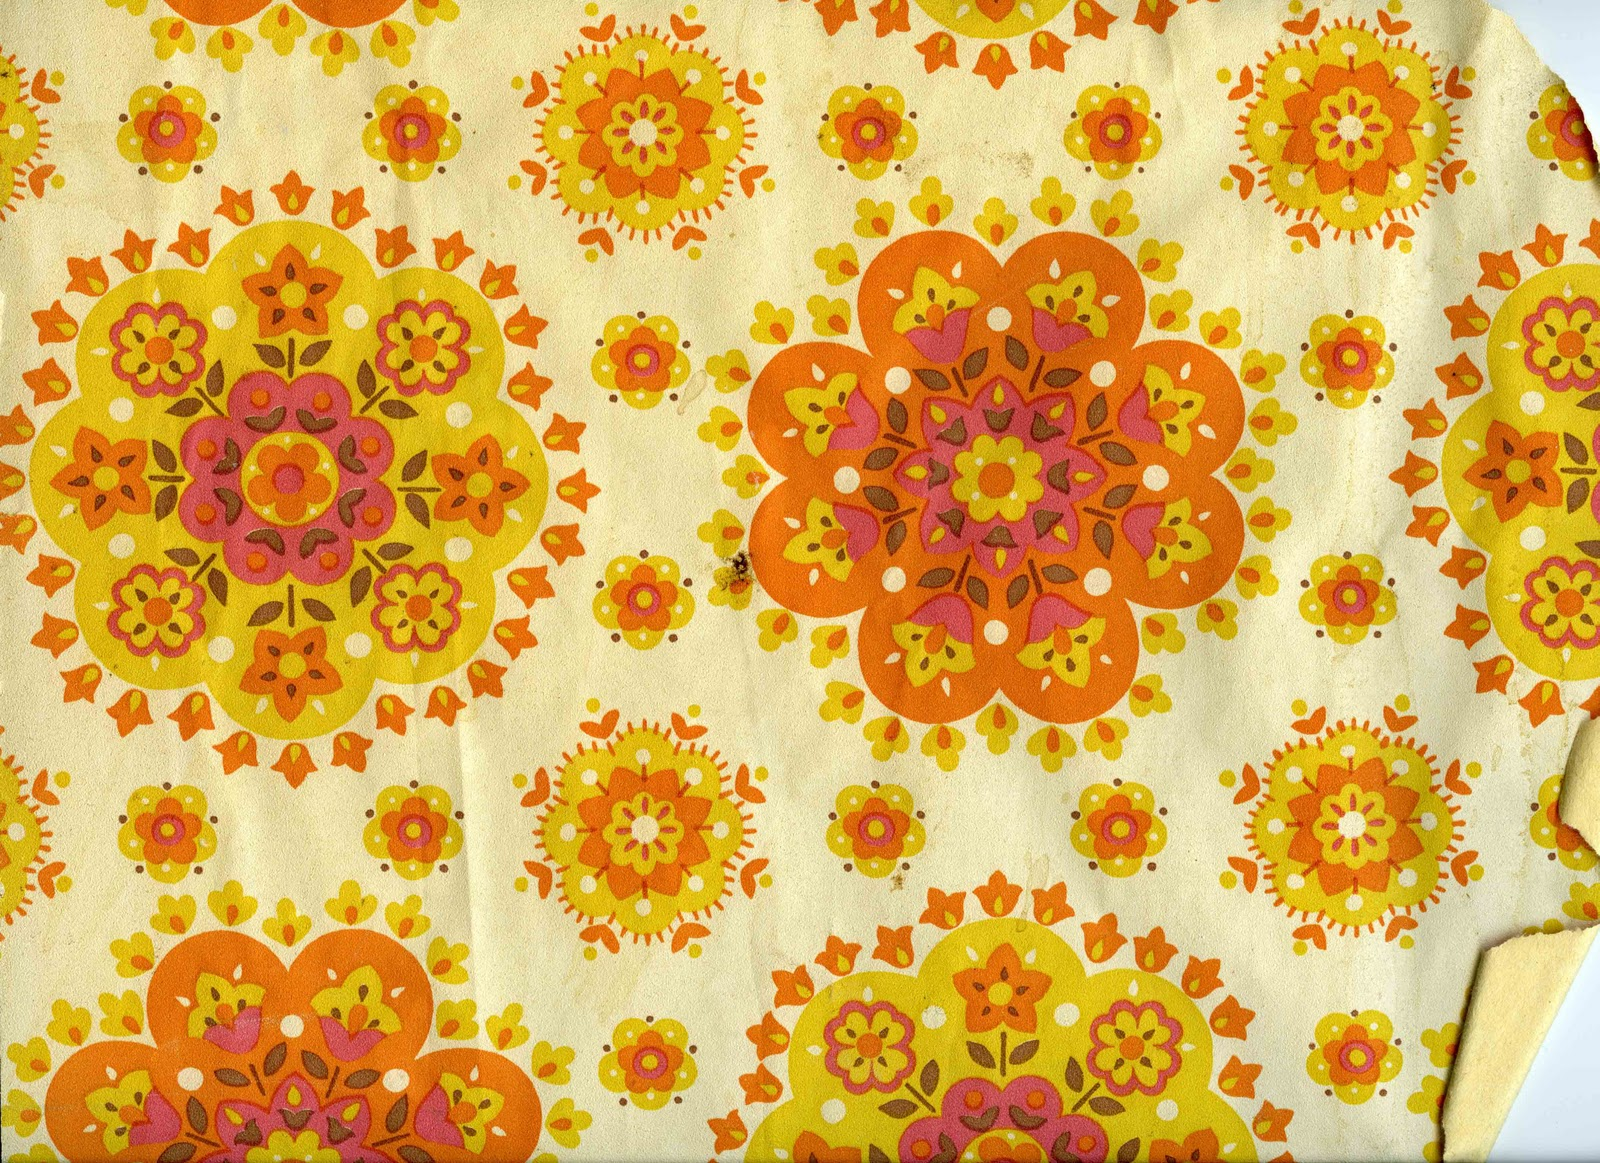 http://3.bp.blogspot.com/-D6WPi5UenF0/TVpmD7HRdtI/AAAAAAAAAOg/xjvhyQkeKgc/s1600/wallpaper-60s-70s-yellow-orange-floral-circular-pattern-design-on-wall-of-house-built-in-about-1970-fading-and-tattered-rotated-5-DHD.jpg